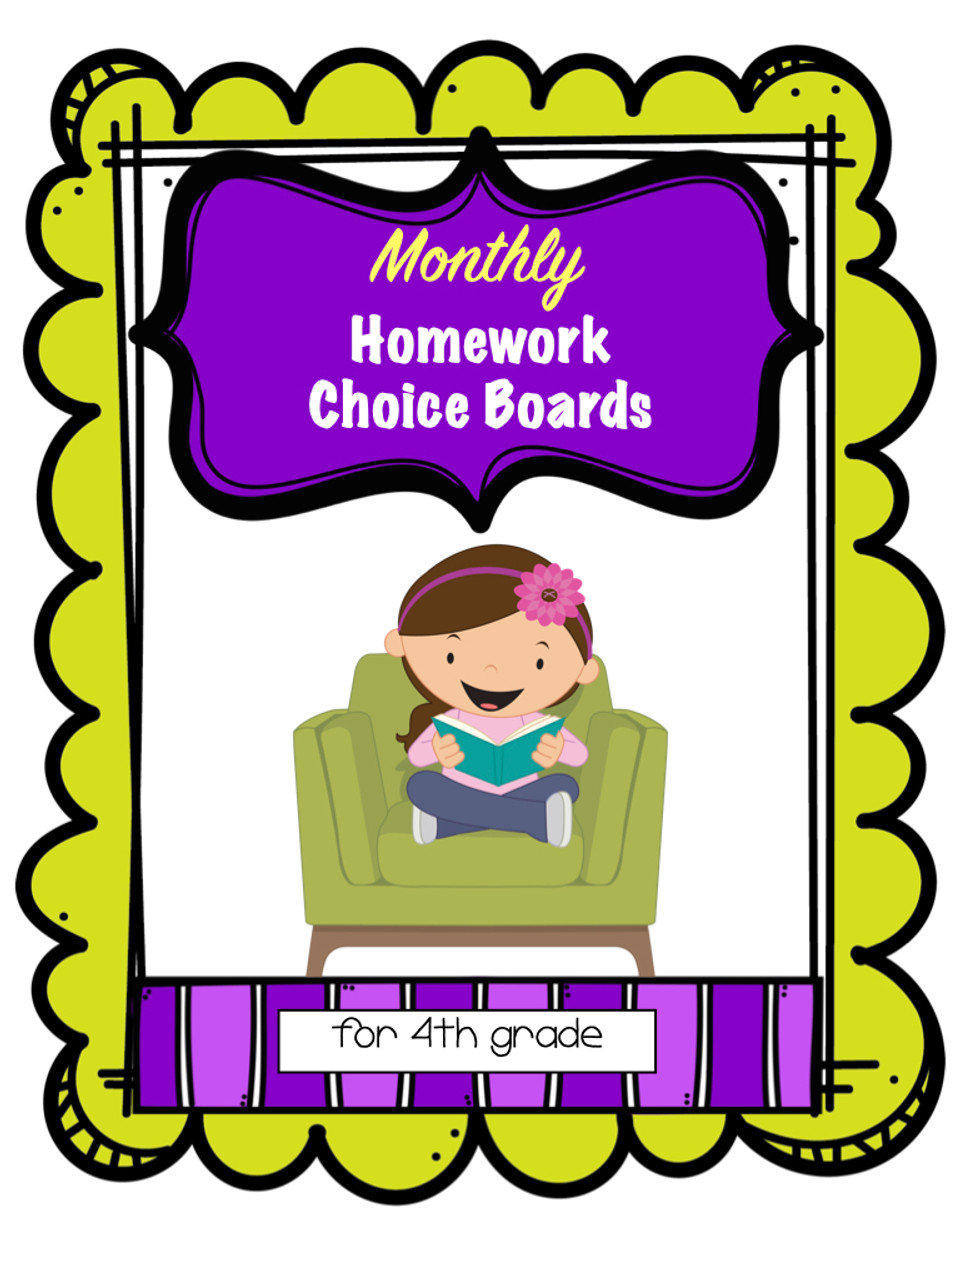 4th Grade Homework Choice Boards for All Year